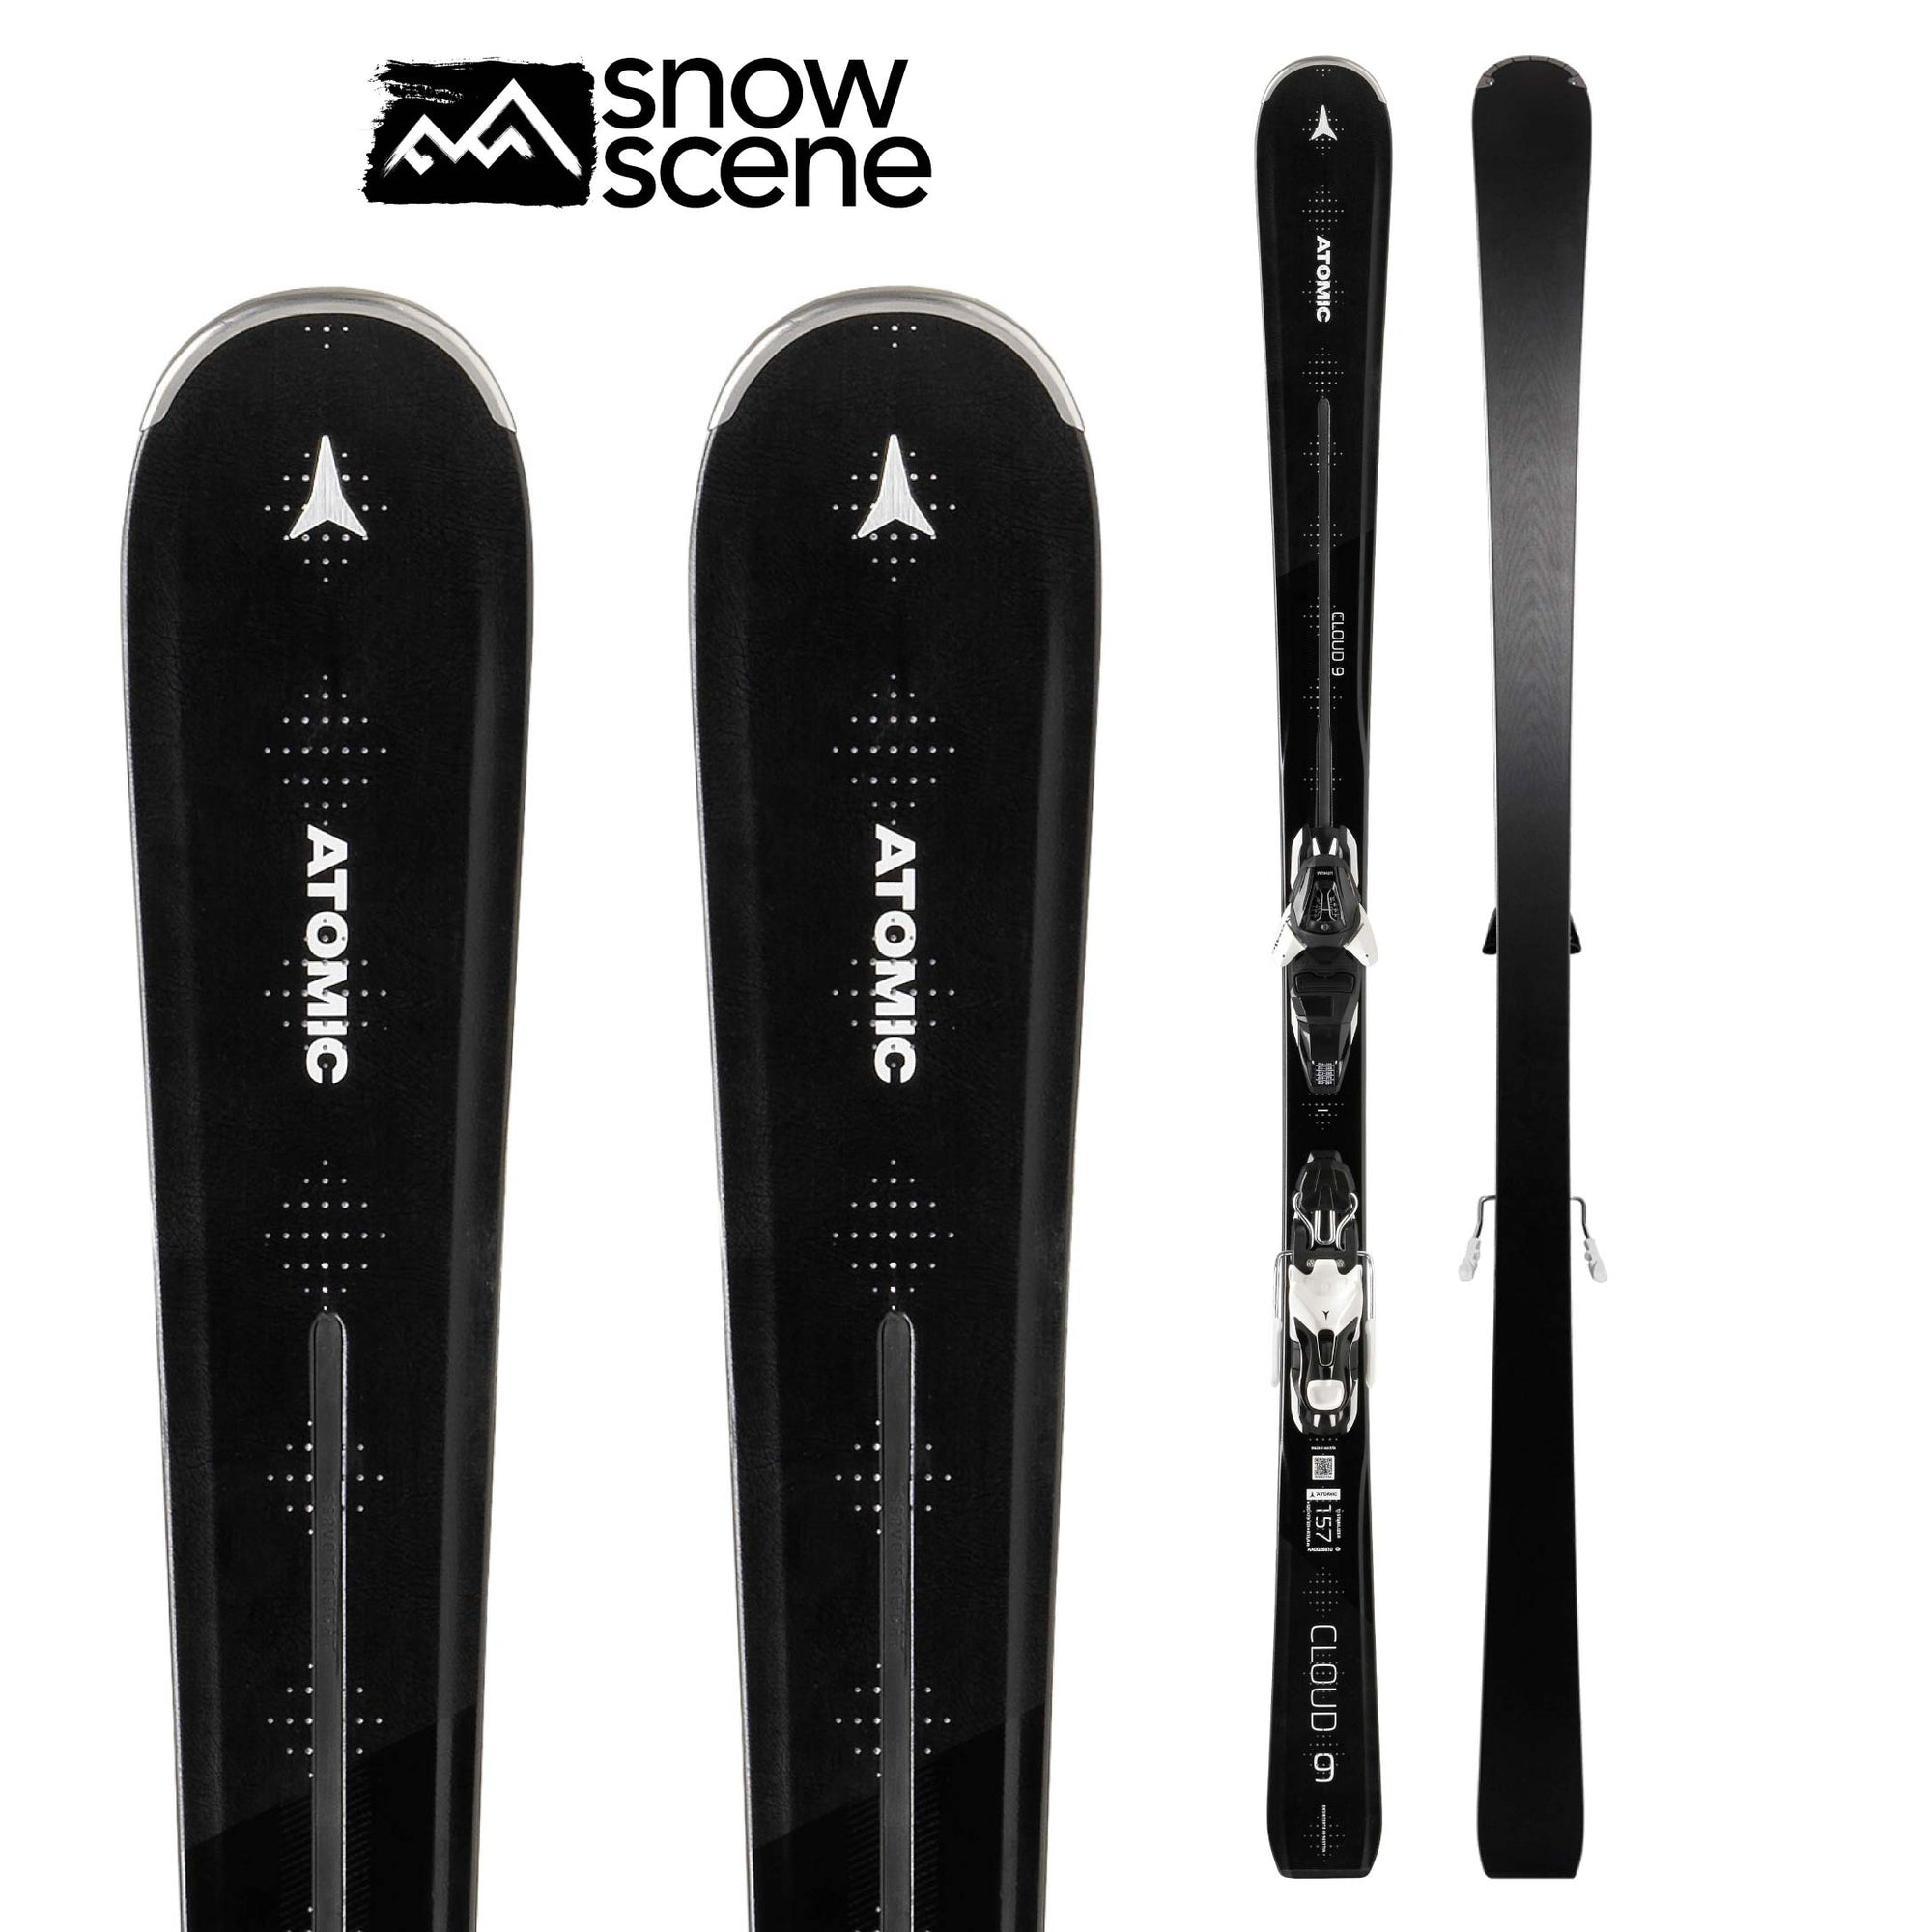 2019 Atomic Cloud 9 W- Shop Skis and snow gear online nz - snowscene